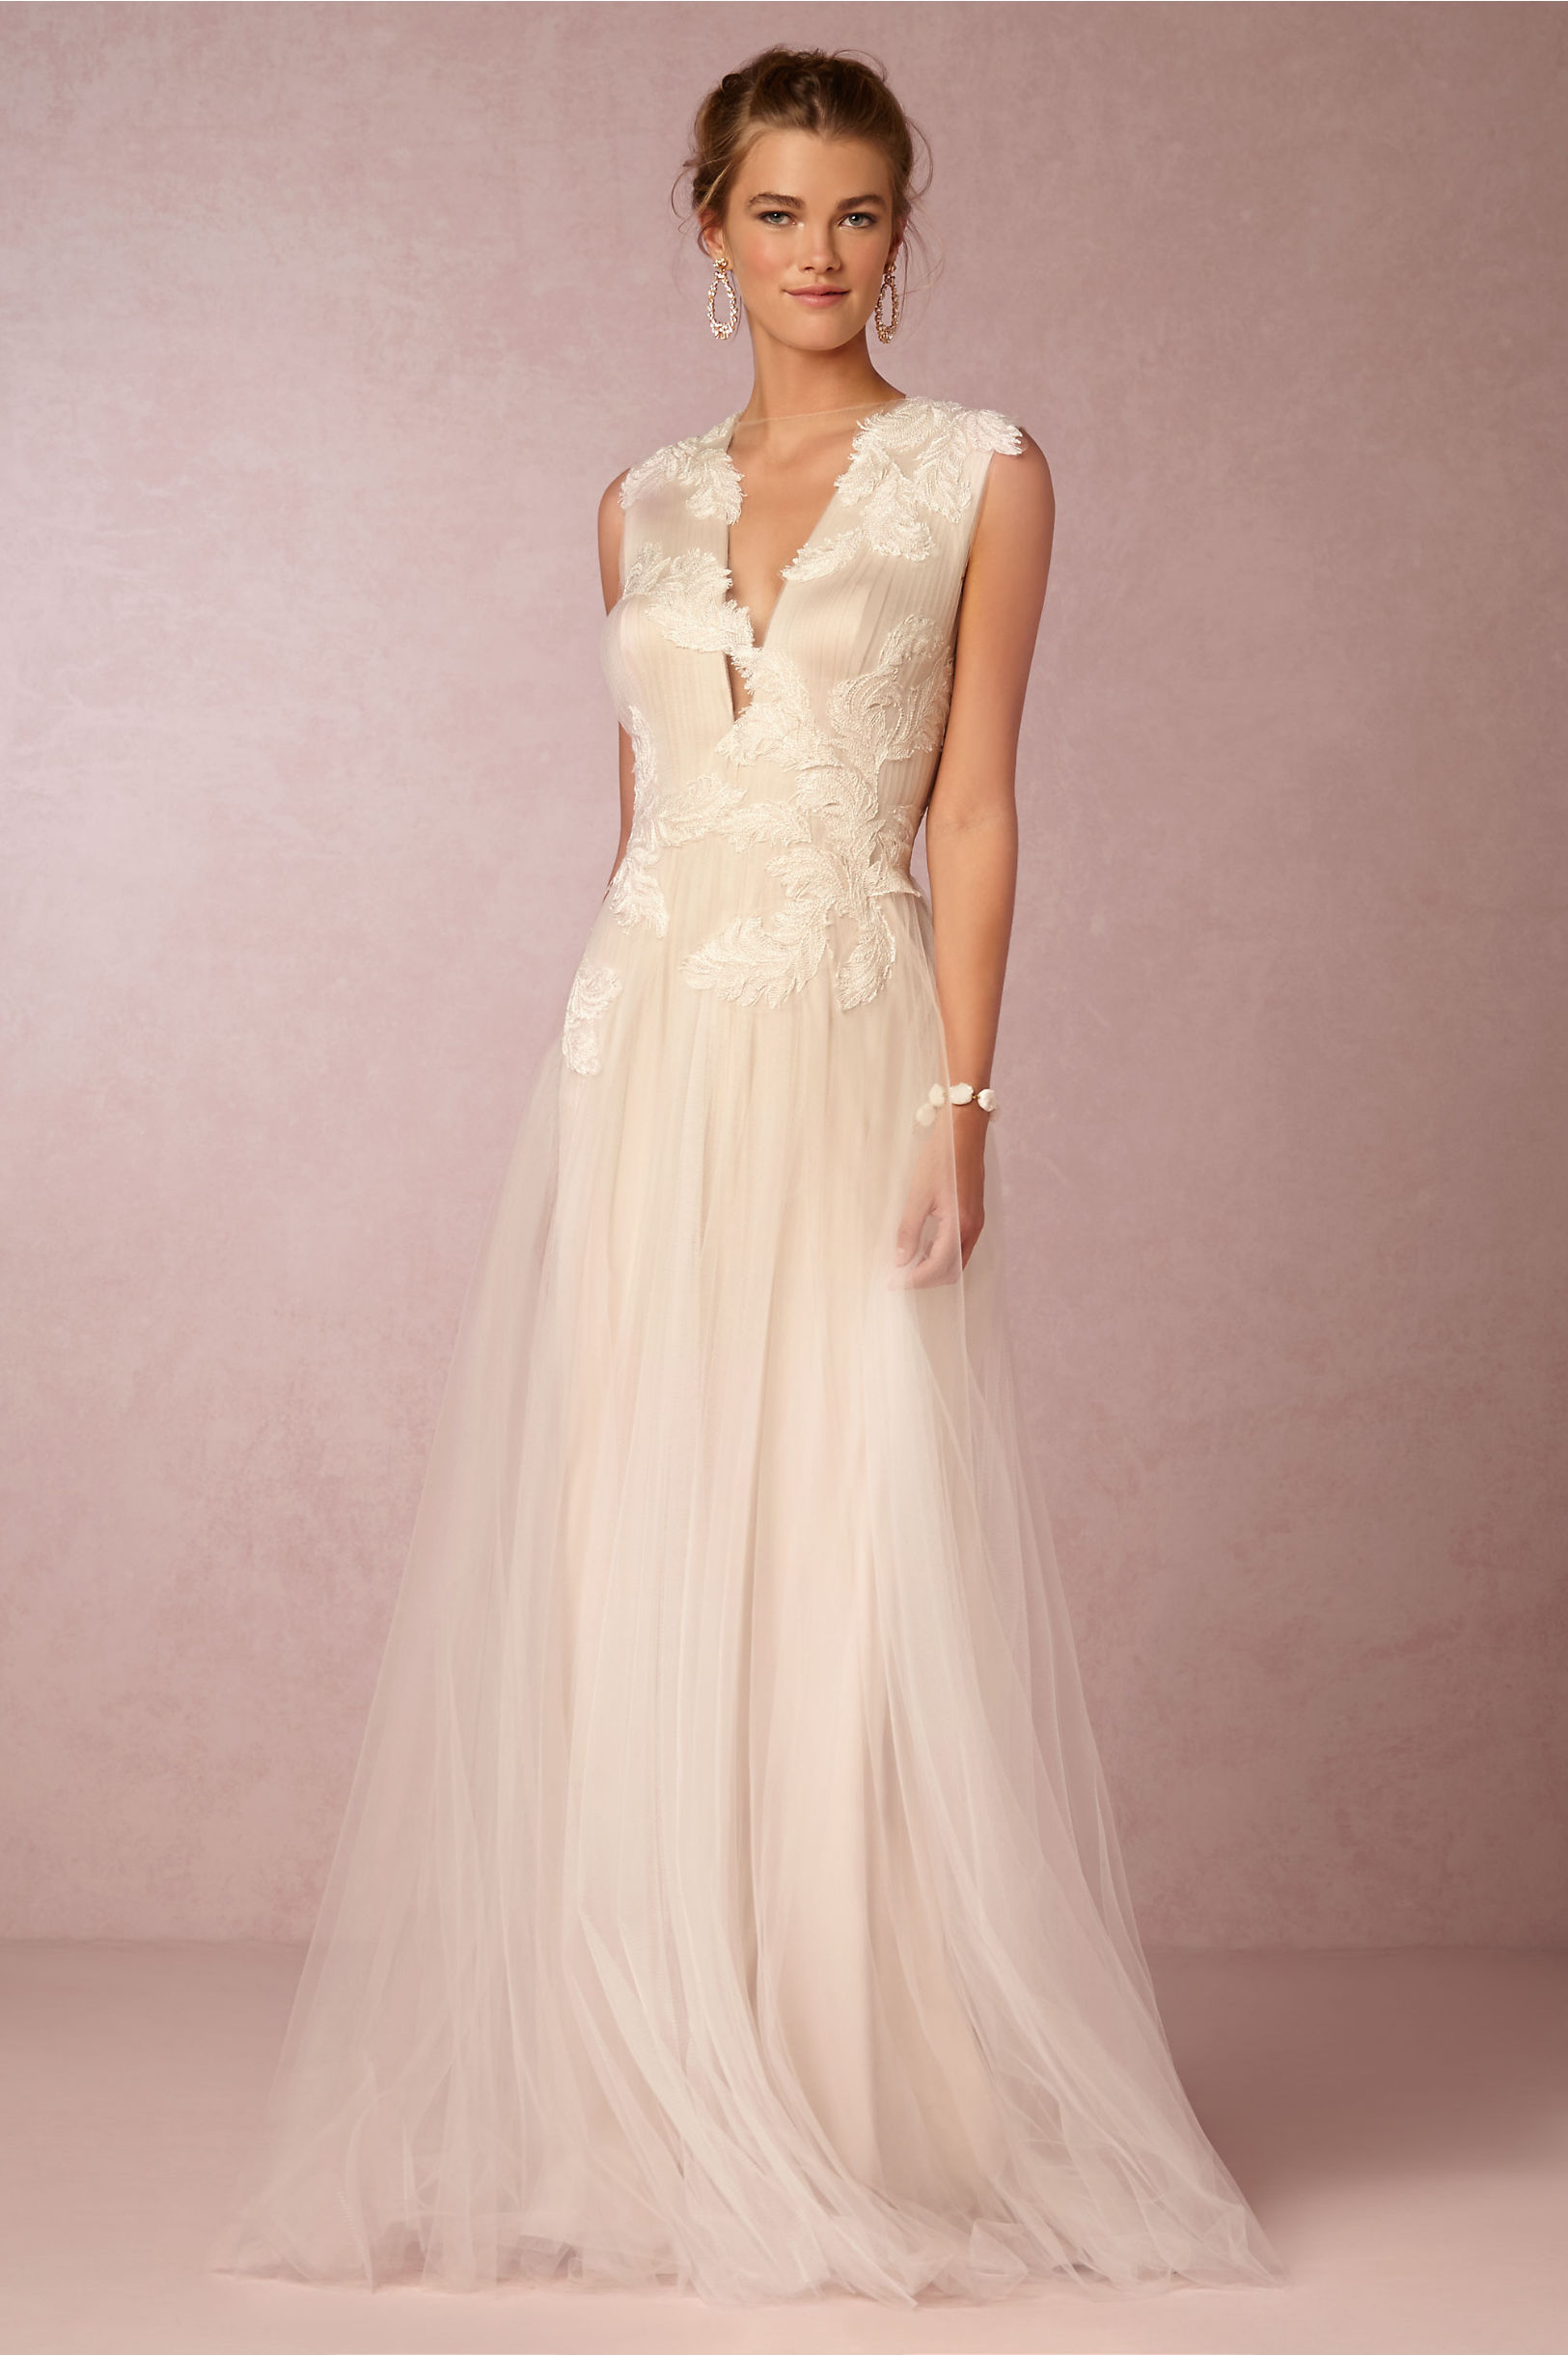 Rosemary Gown in Sale Wedding Dresses - BHLDN